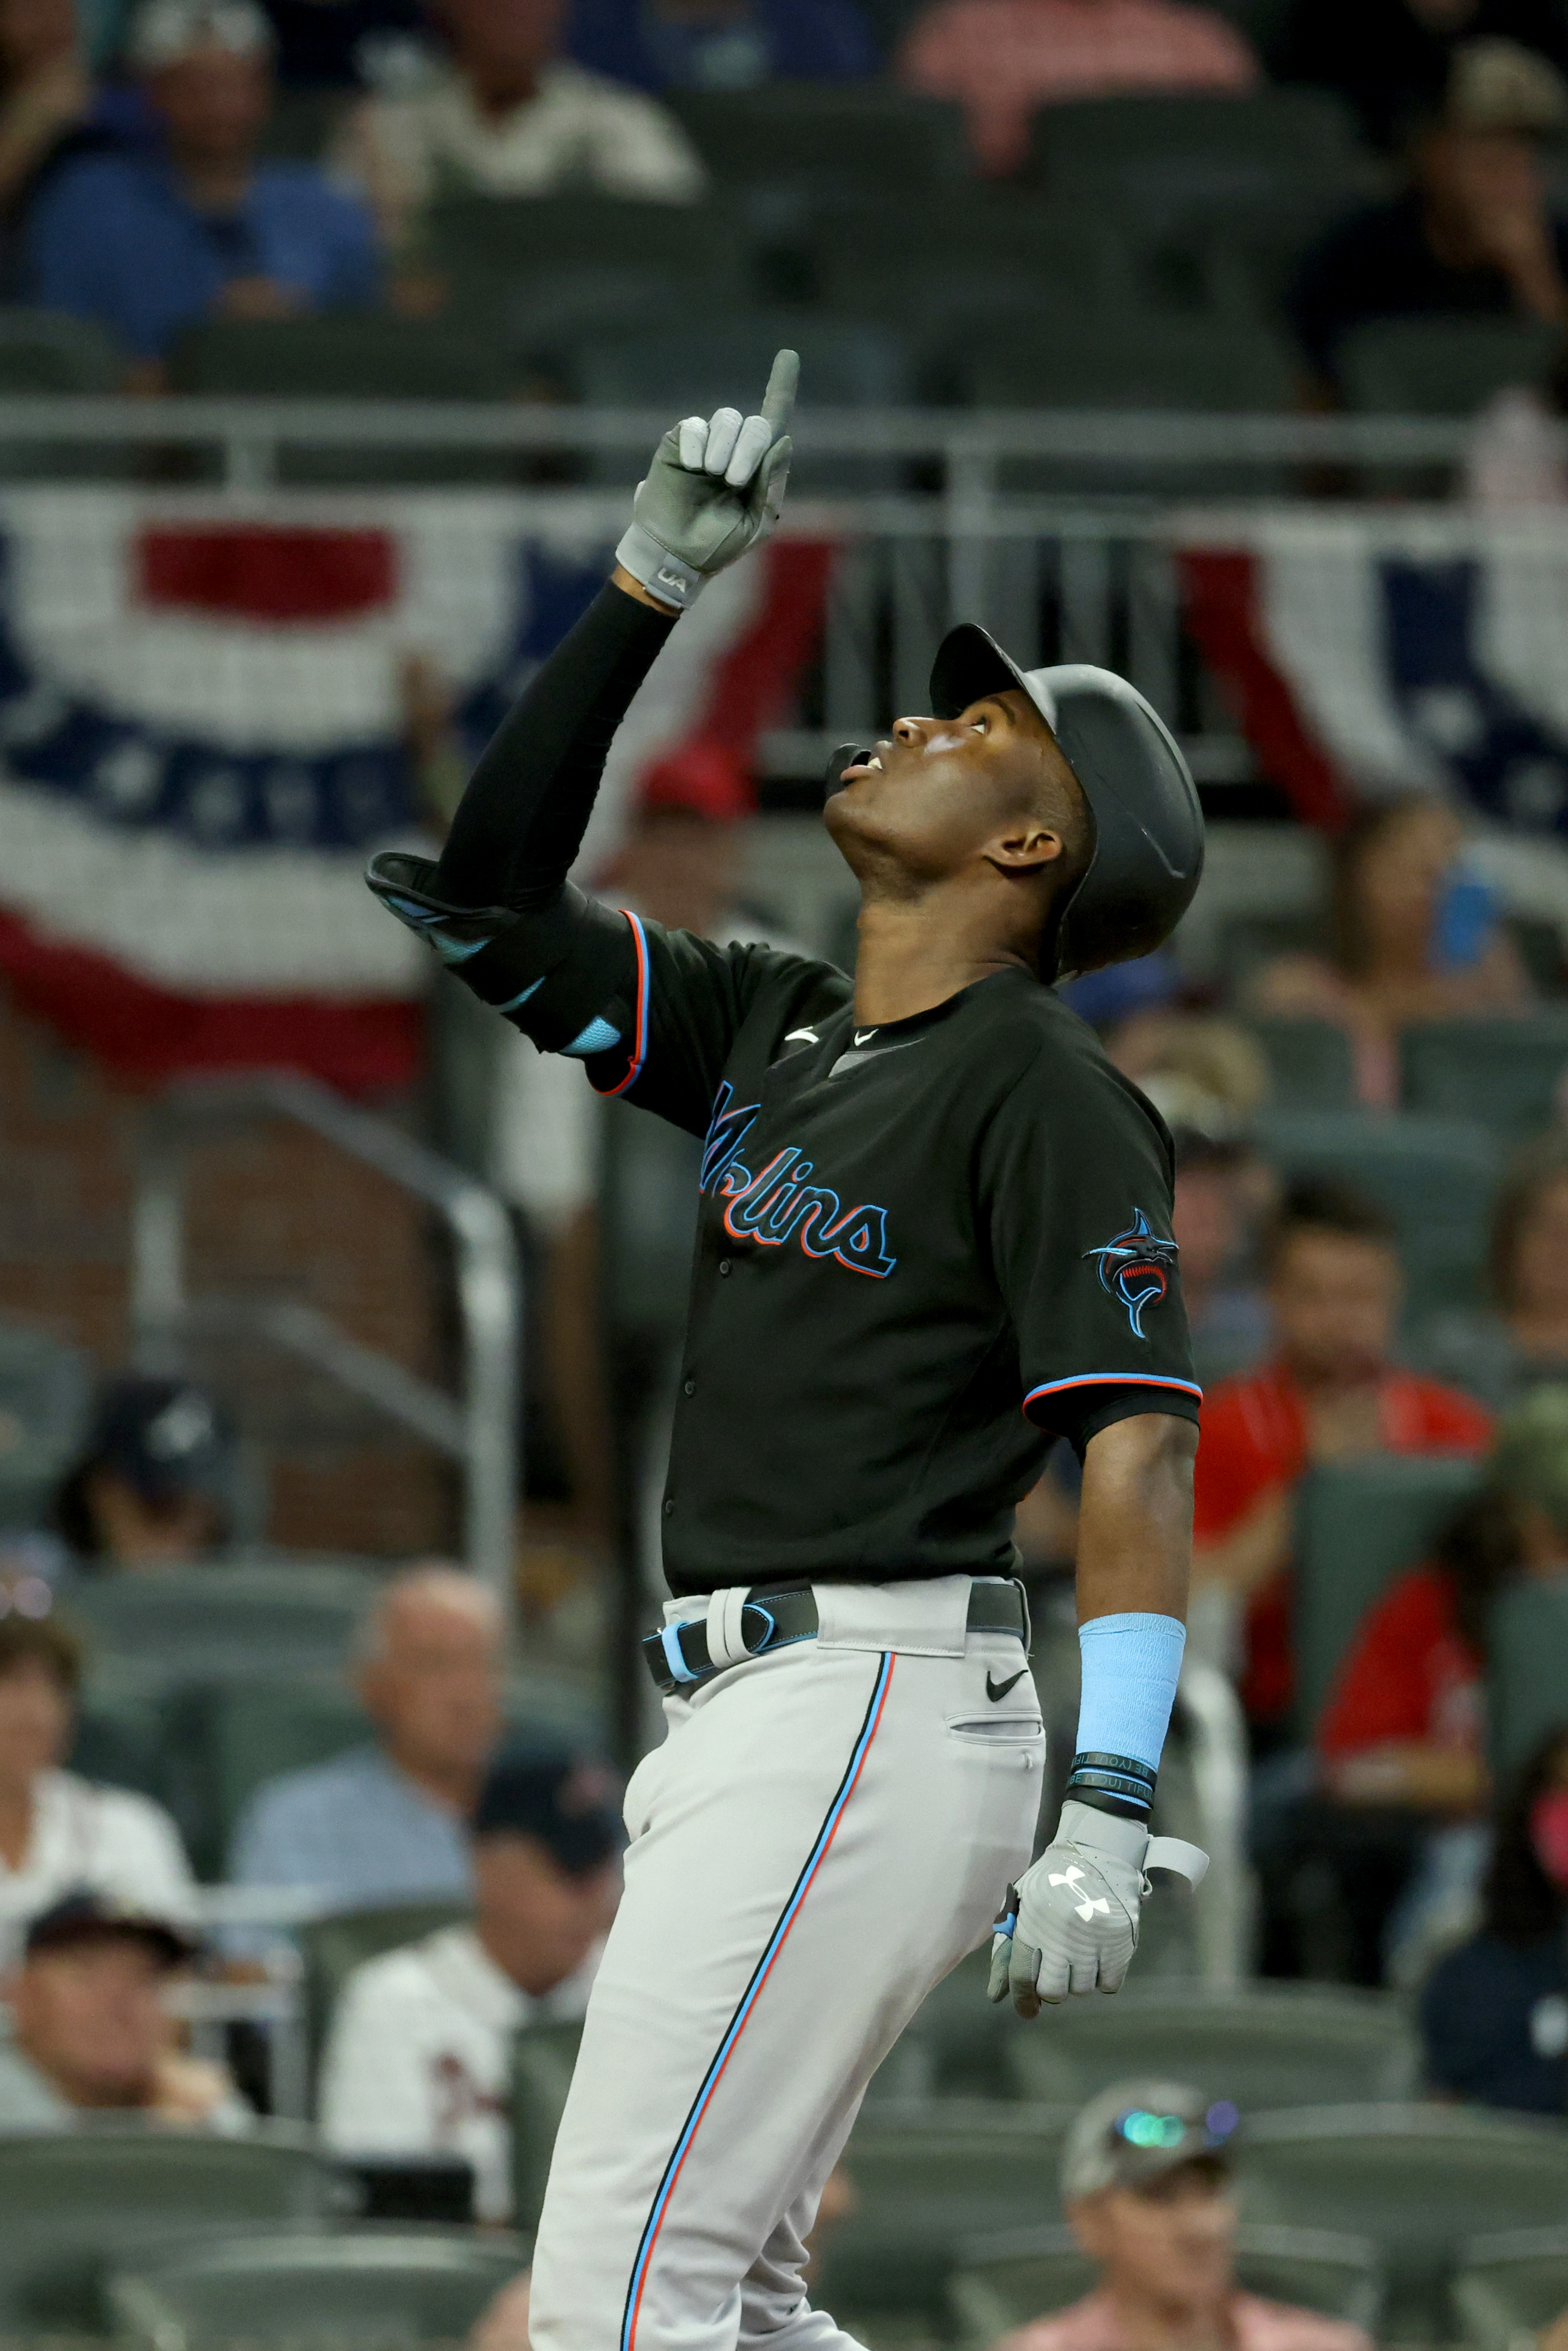 Miami Marlins outfielder Jesus Sanchez reacts after he hit a solo home run during the eighth inning against the Atlanta Braves at Truist Park